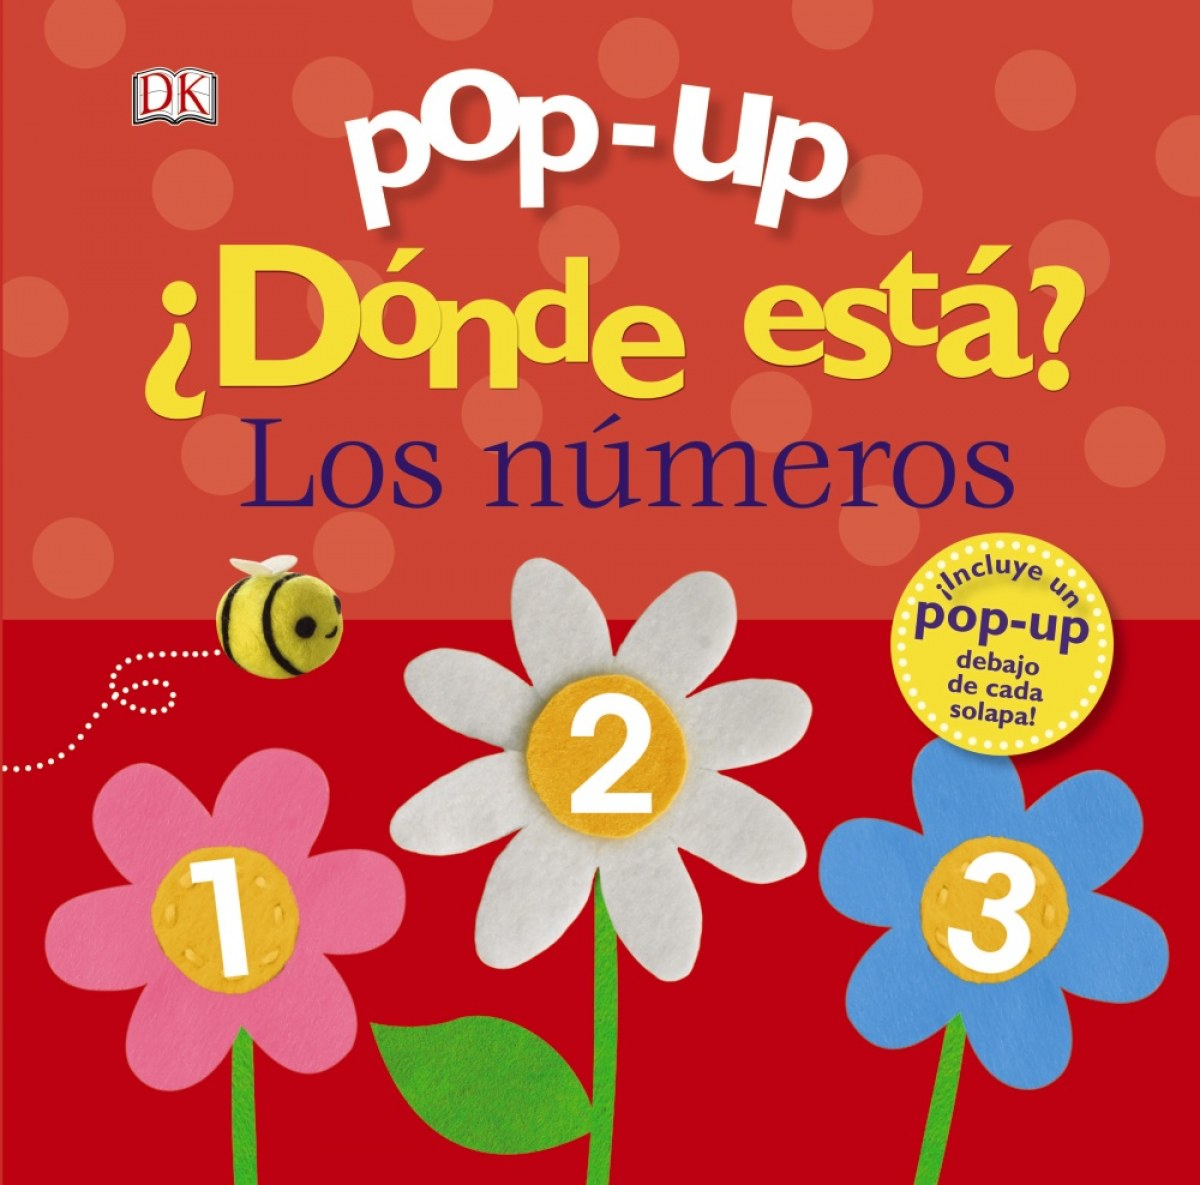 POP-UP. ¿DÓNDE ESTÁ?